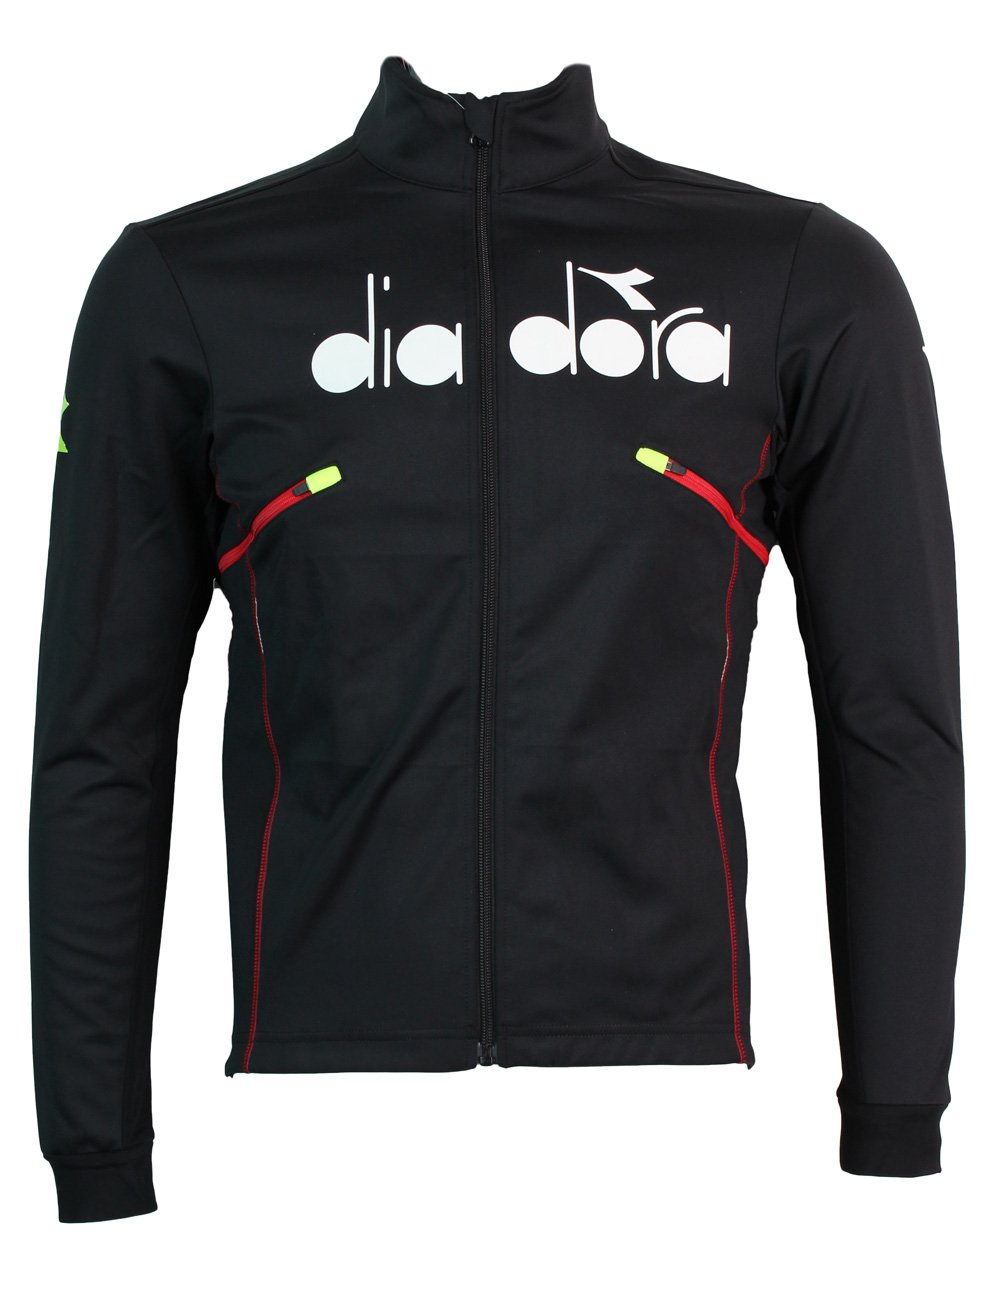 Diadora Thermojacket Retro 4D